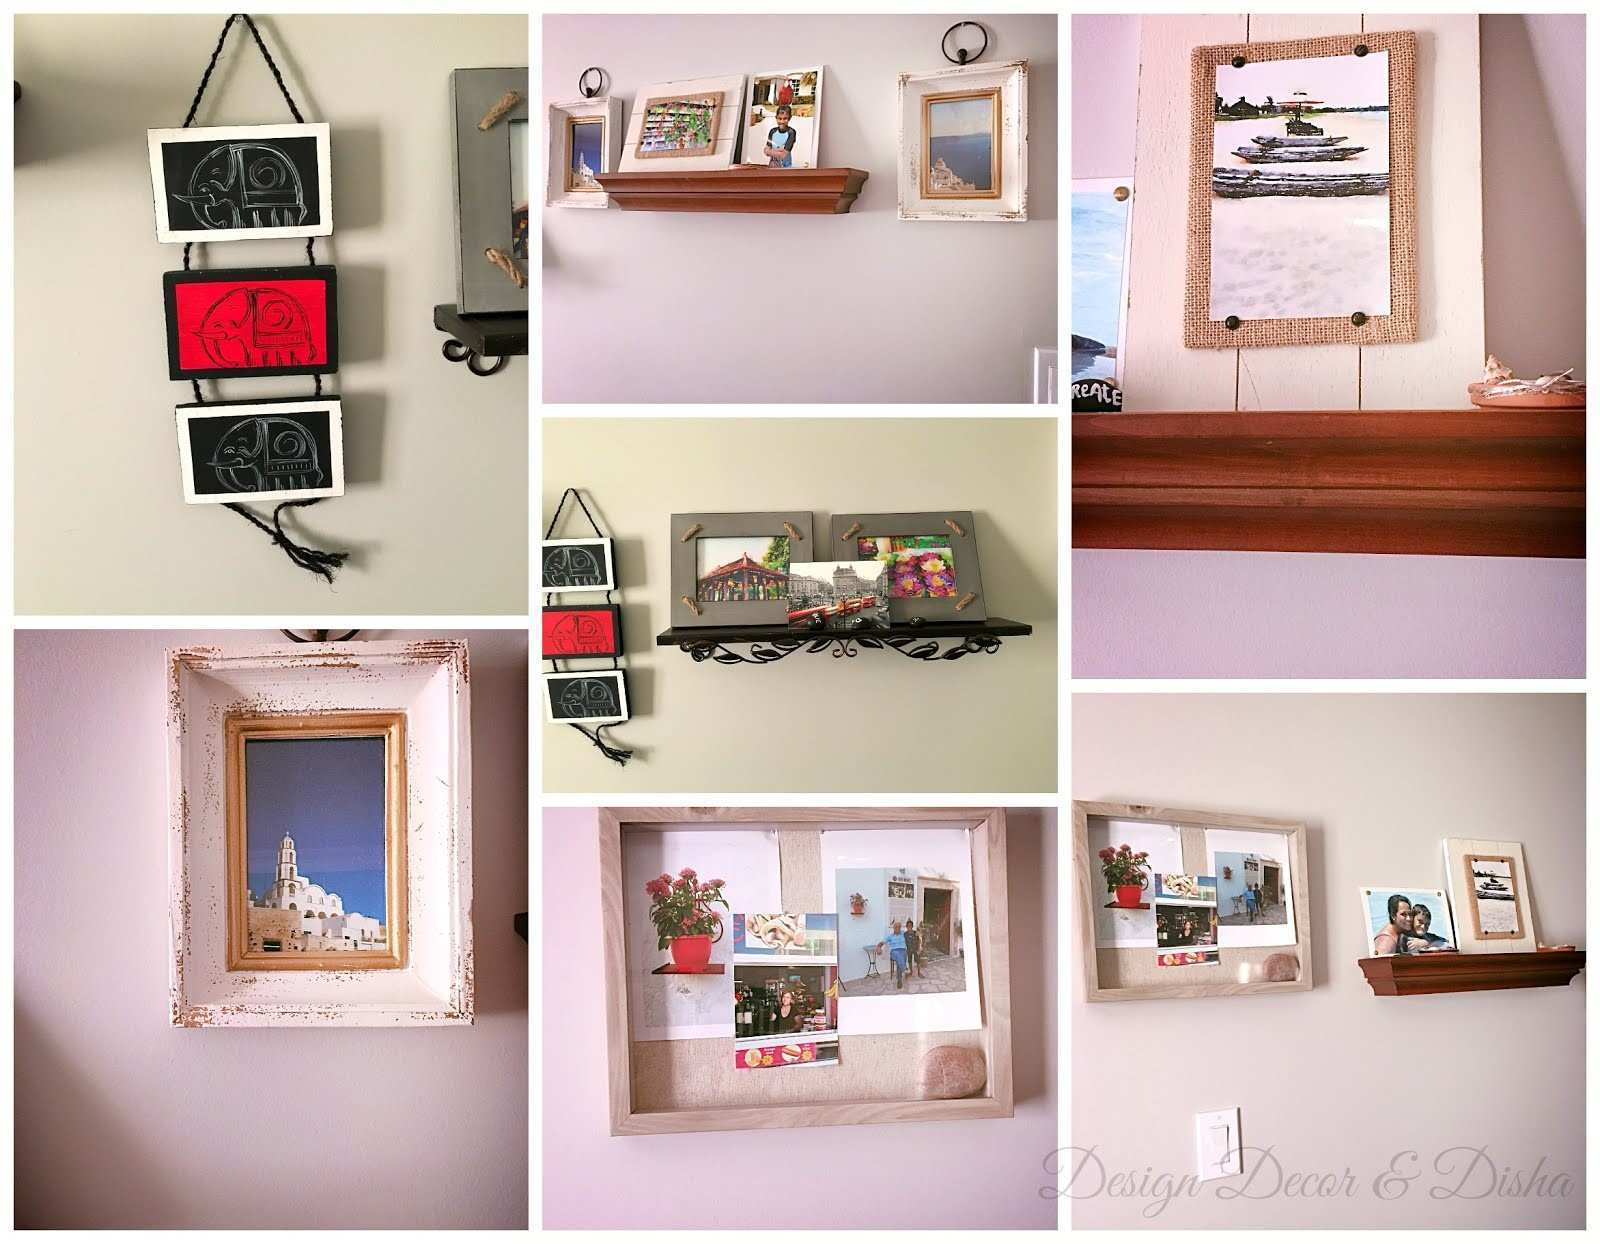 Home Designs Wall Shelves With Baskets For Admirable Fresh